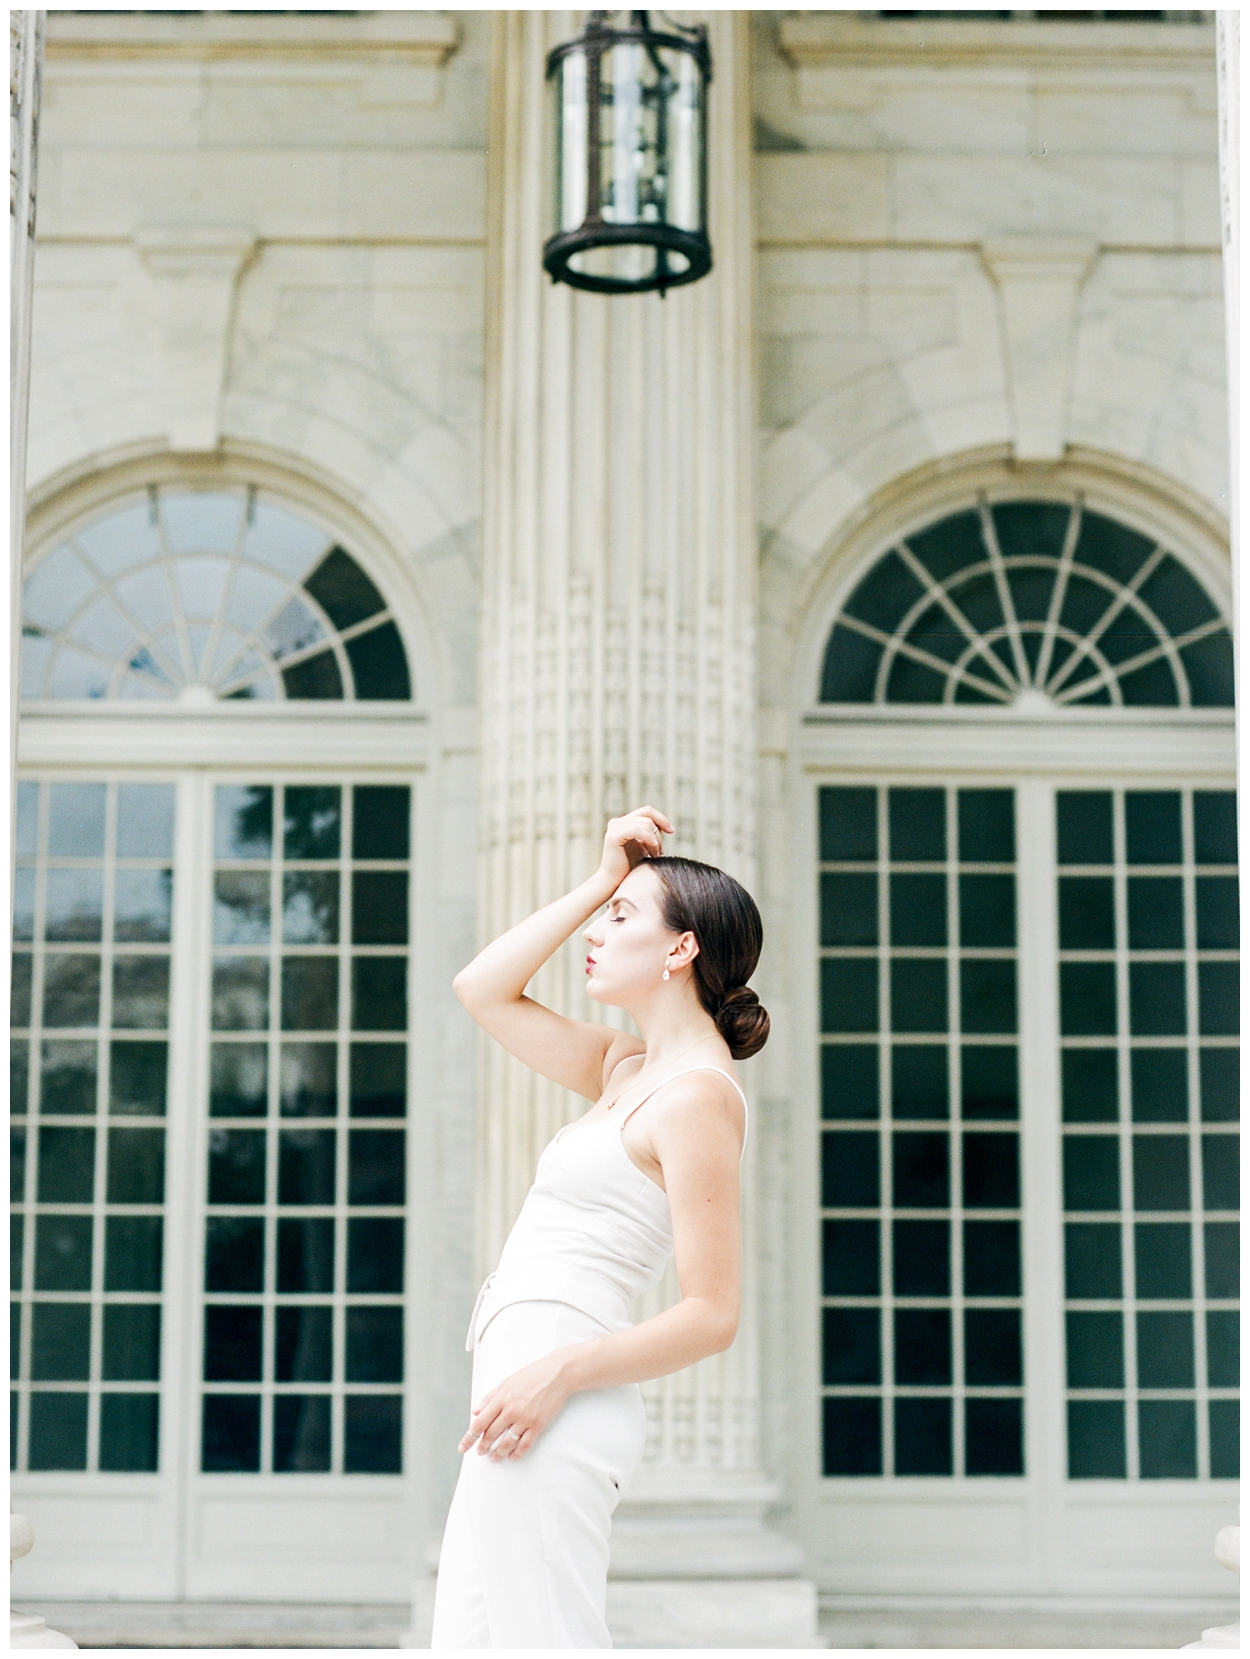 modern bridal editorial with bridal jumpsuit at DAR in washington dc by fine art wedding photographer Lissa Ryan Photography